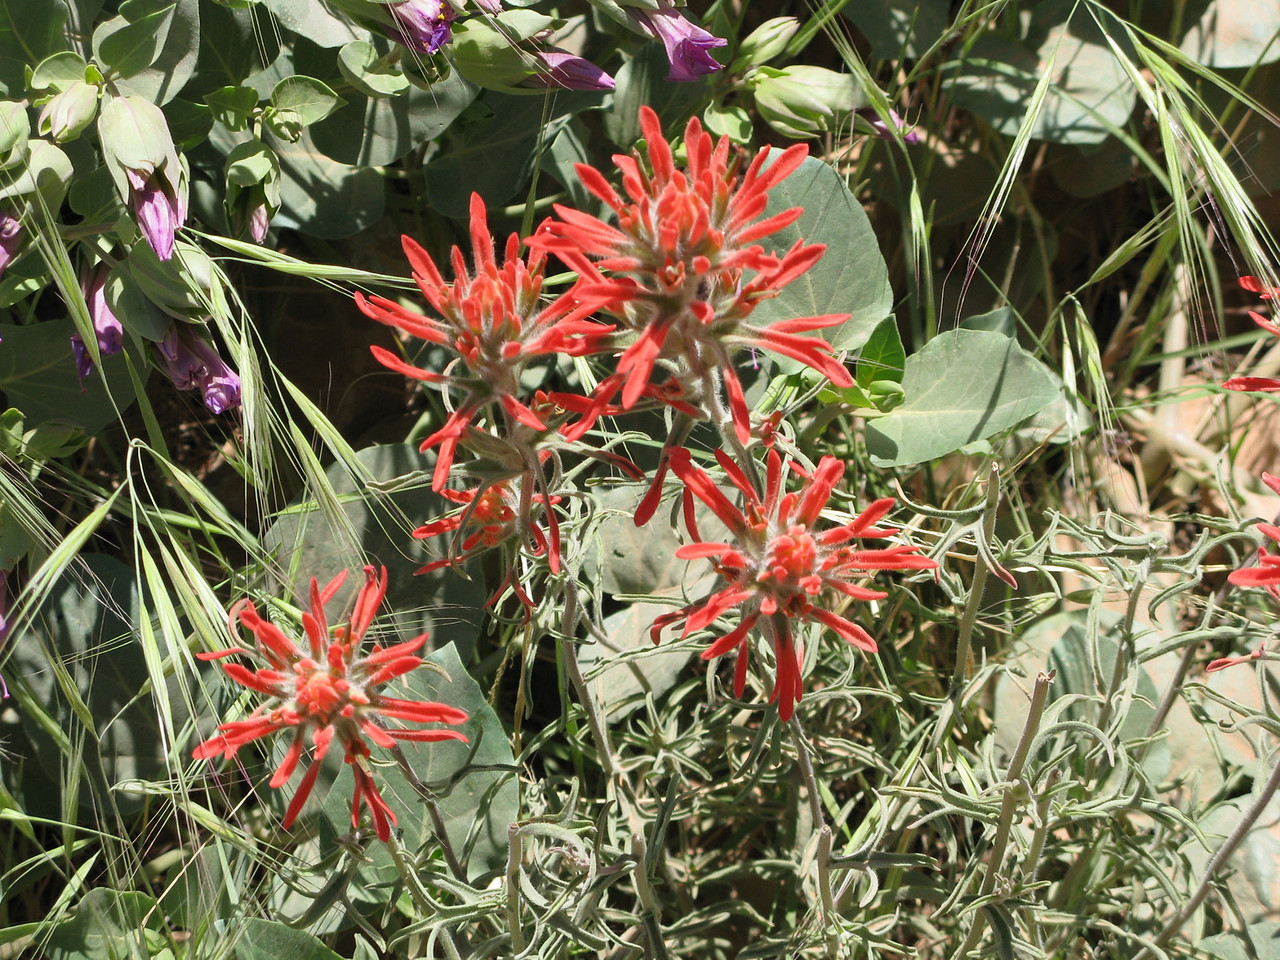 Bright Indian Paintbrush blossomed frequently along the trail.